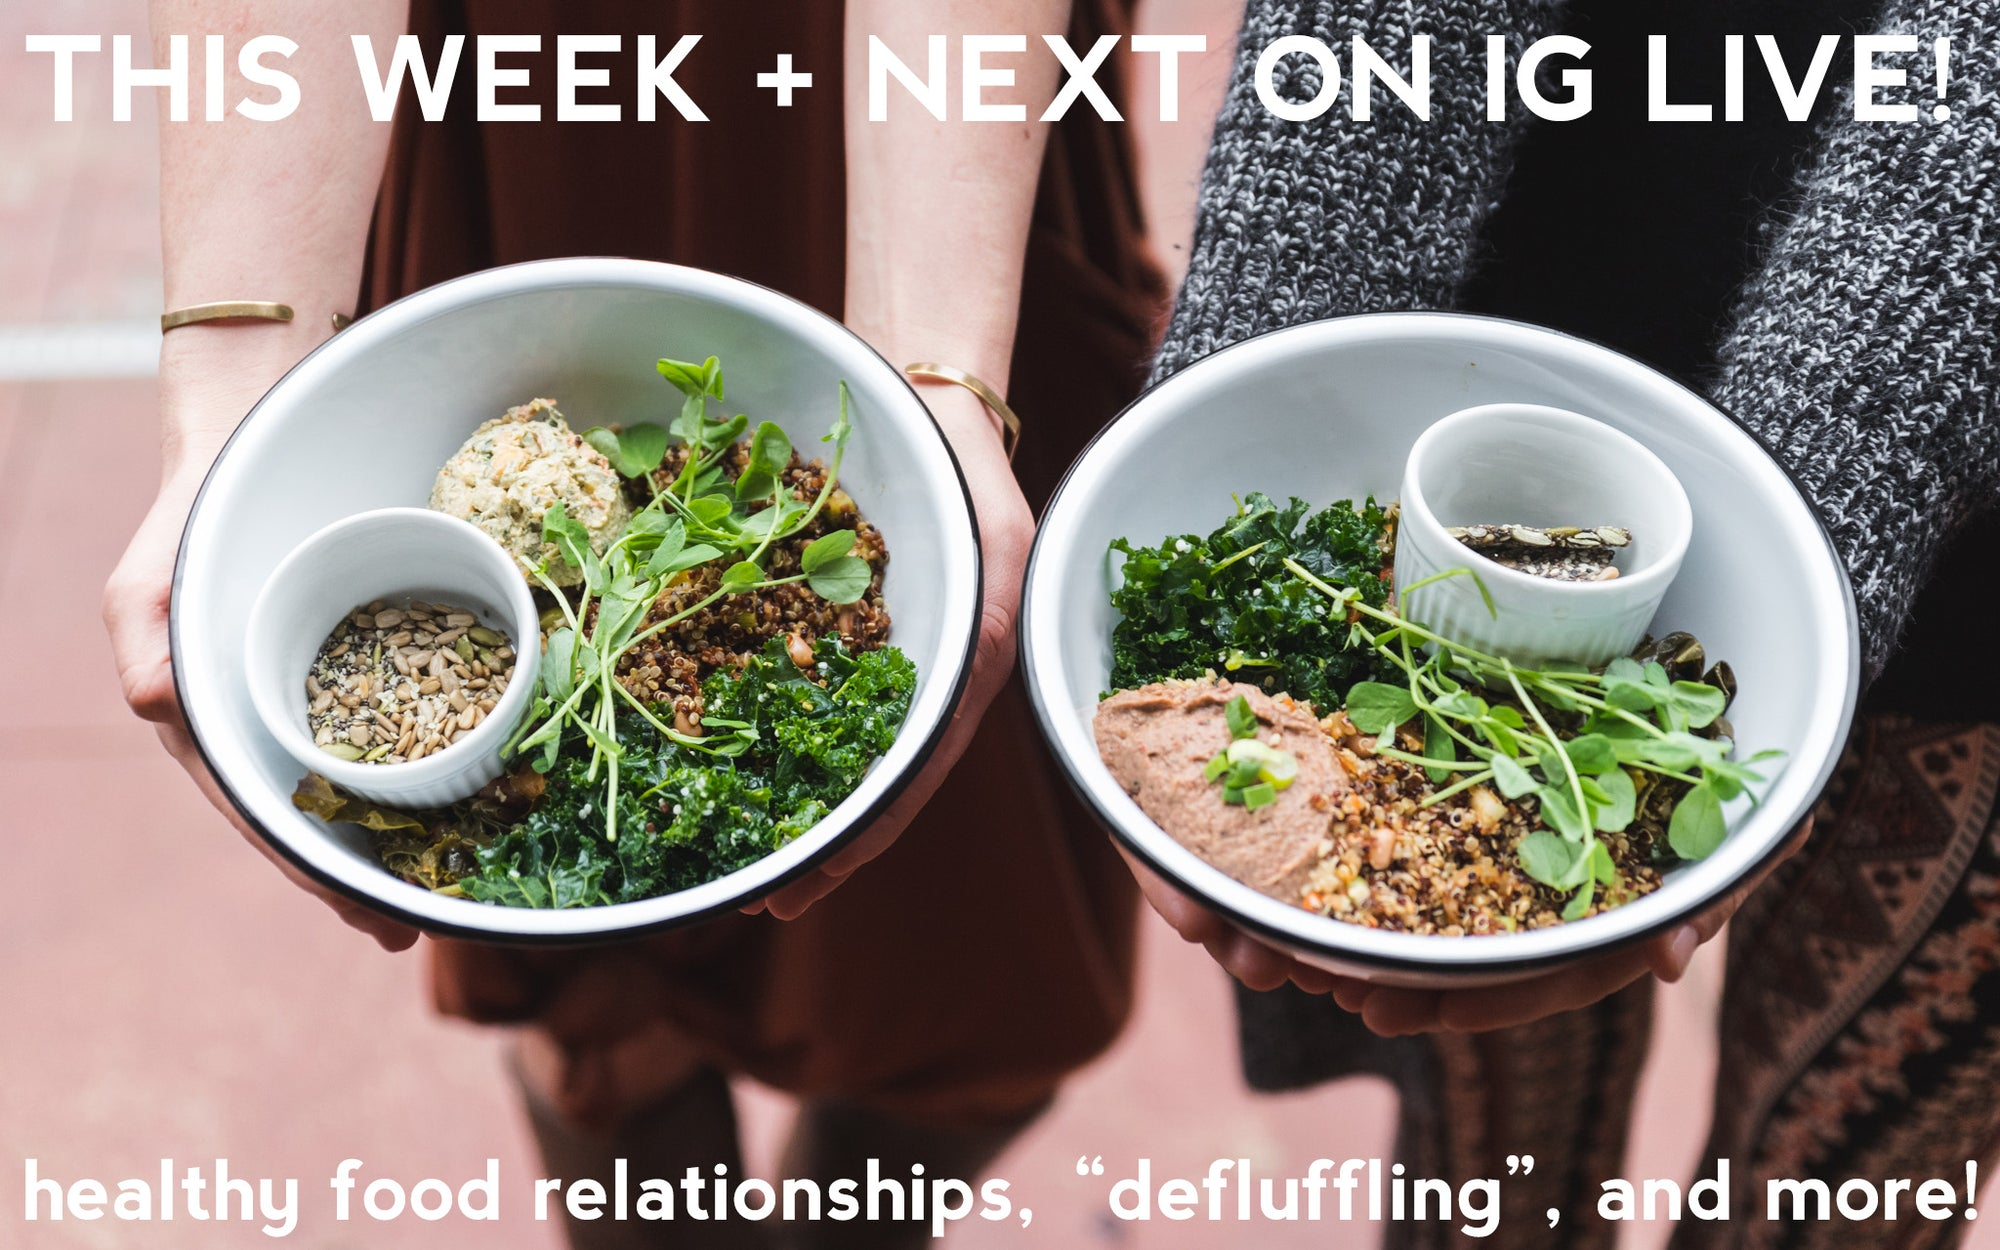 Healing our relationships with food through veganism, some smart advice on Summer Defluffing, and more - this week on Instagram!